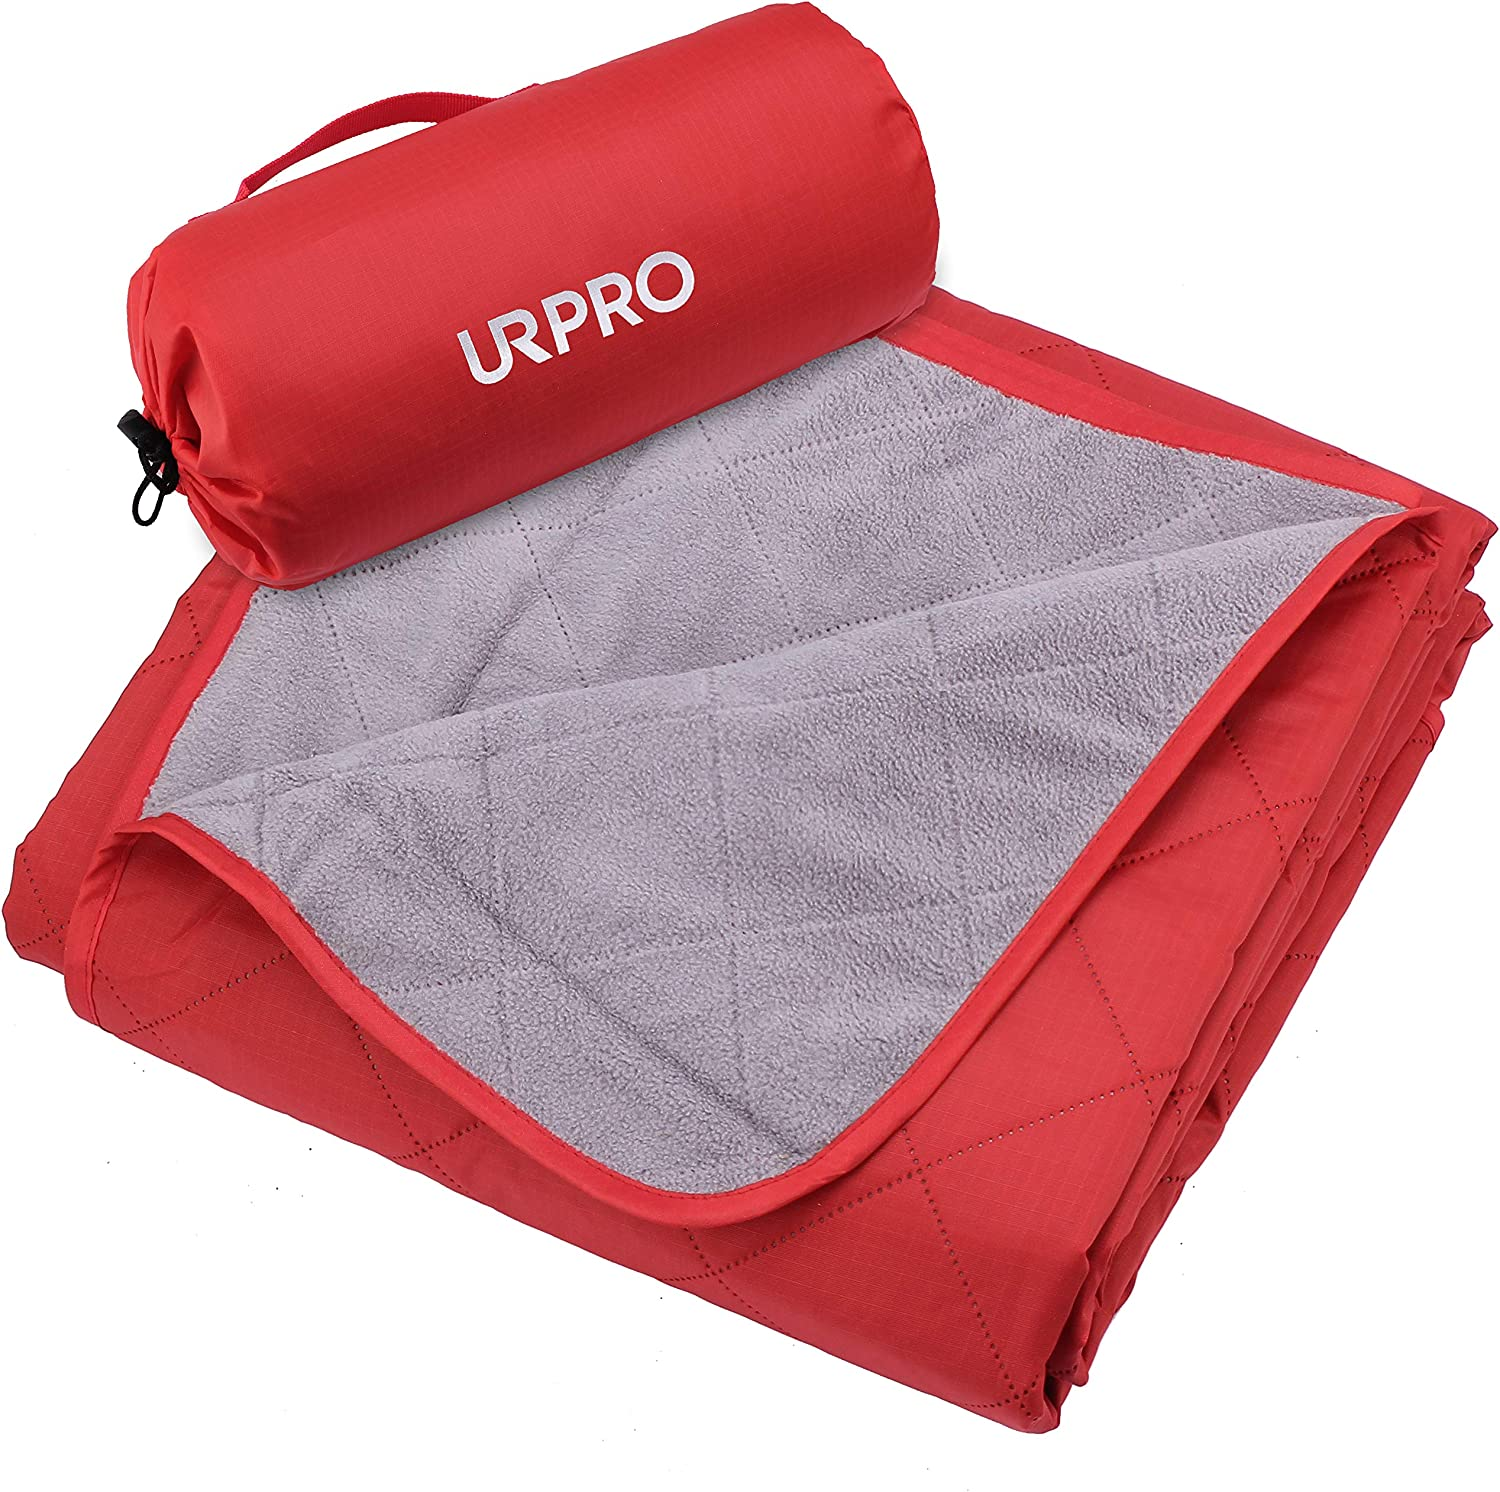 URPRO Waterproof Warm Fleece Outdoor Blanket Extra Large Lightweight Portable with Carry Bag for Stadium, Picnic, Camping, Beach, Dogs, Sofa